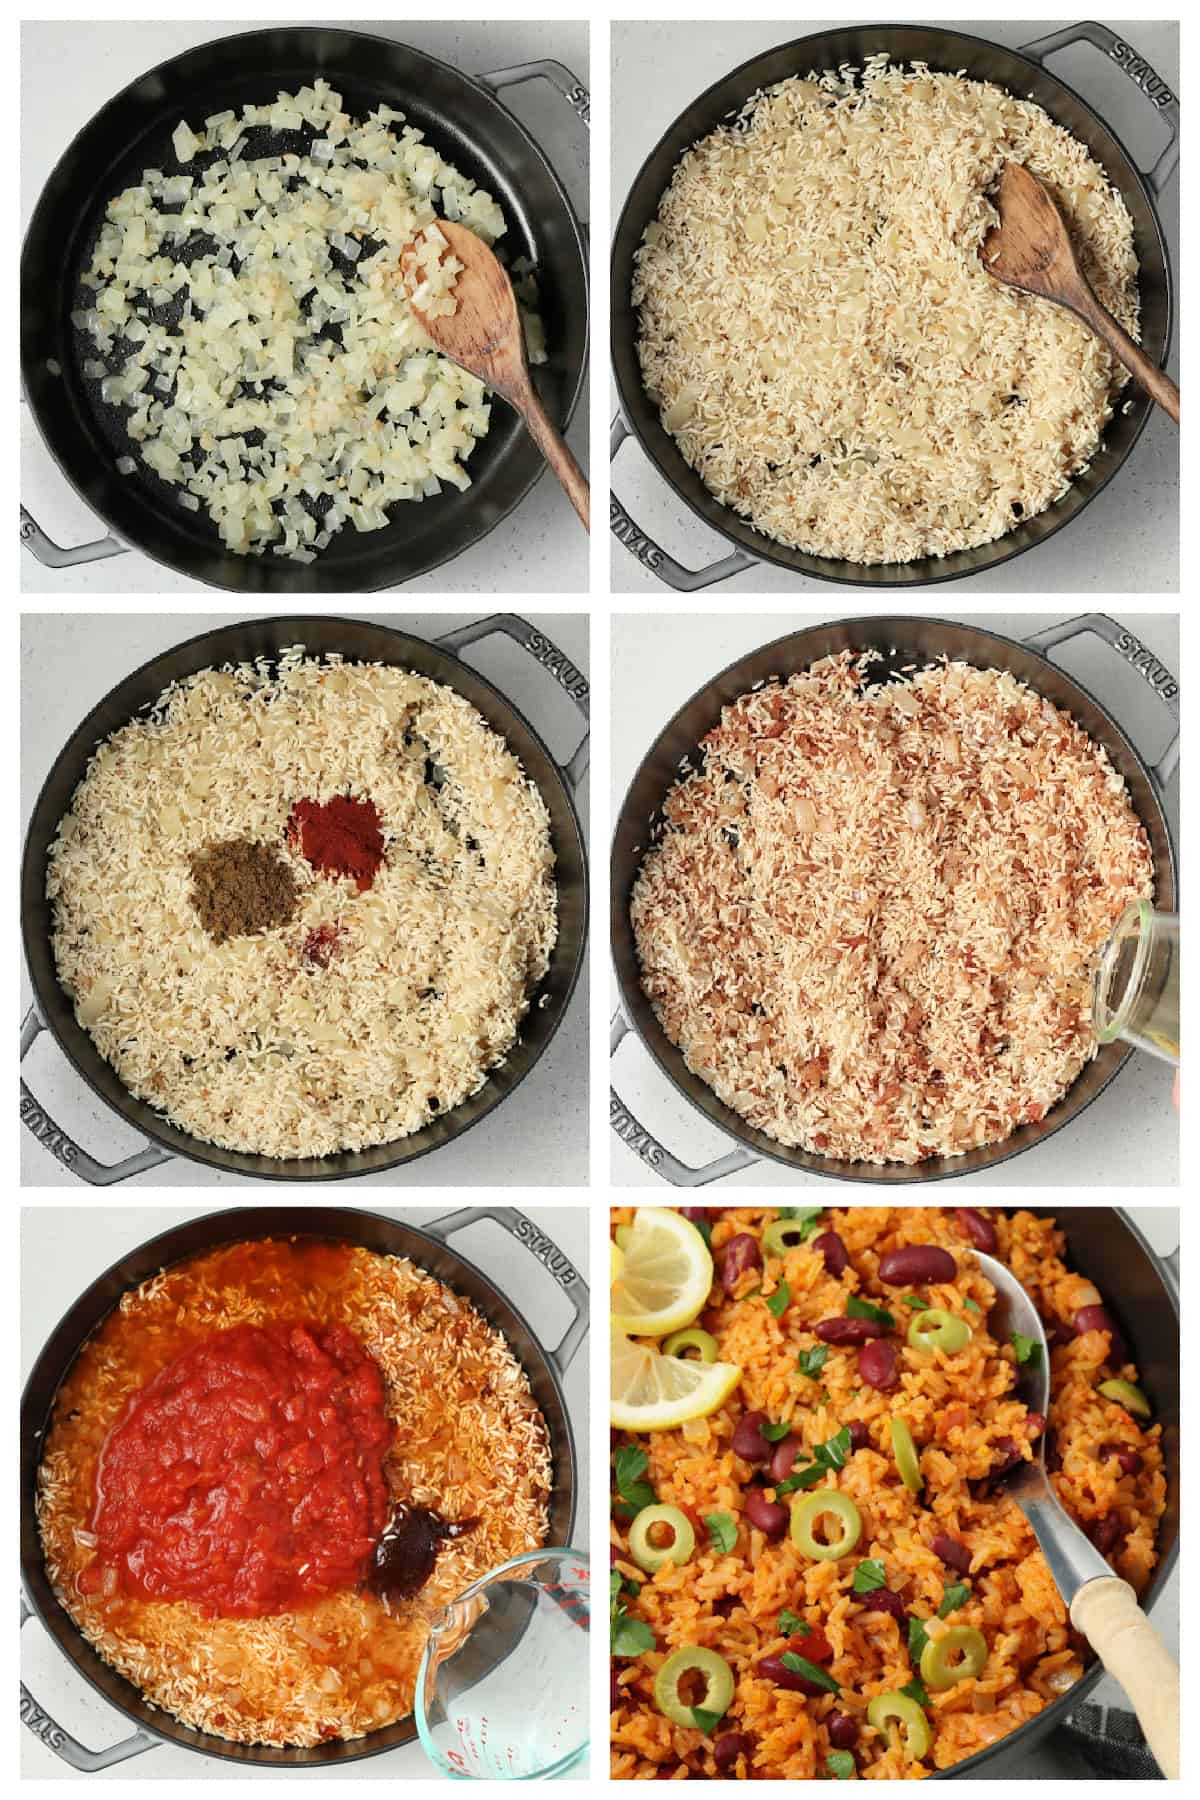 6 process photos showing how to cook the rice.